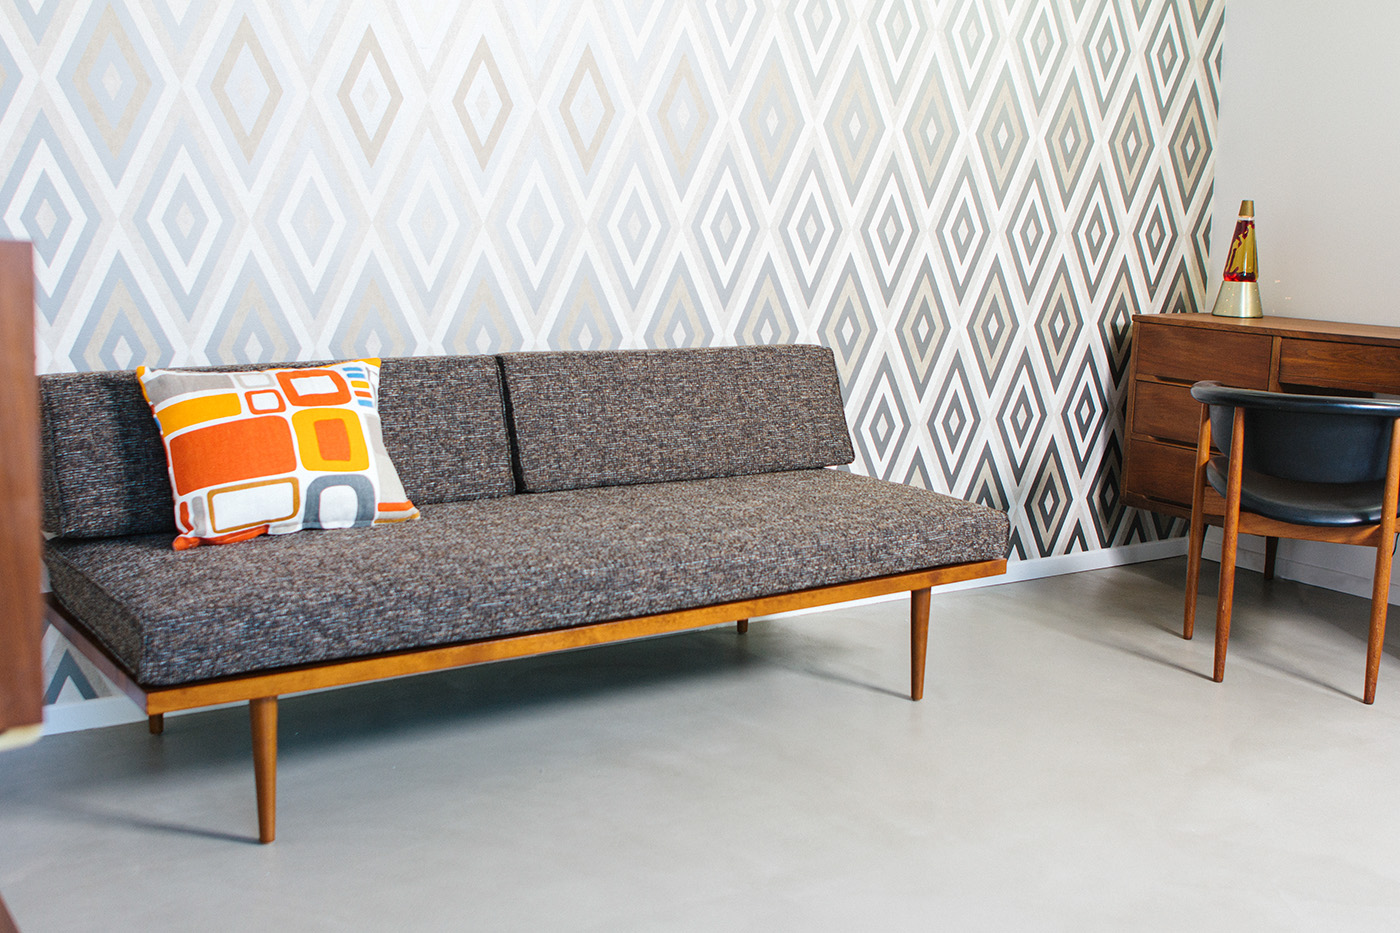 The classic daybed casara modern